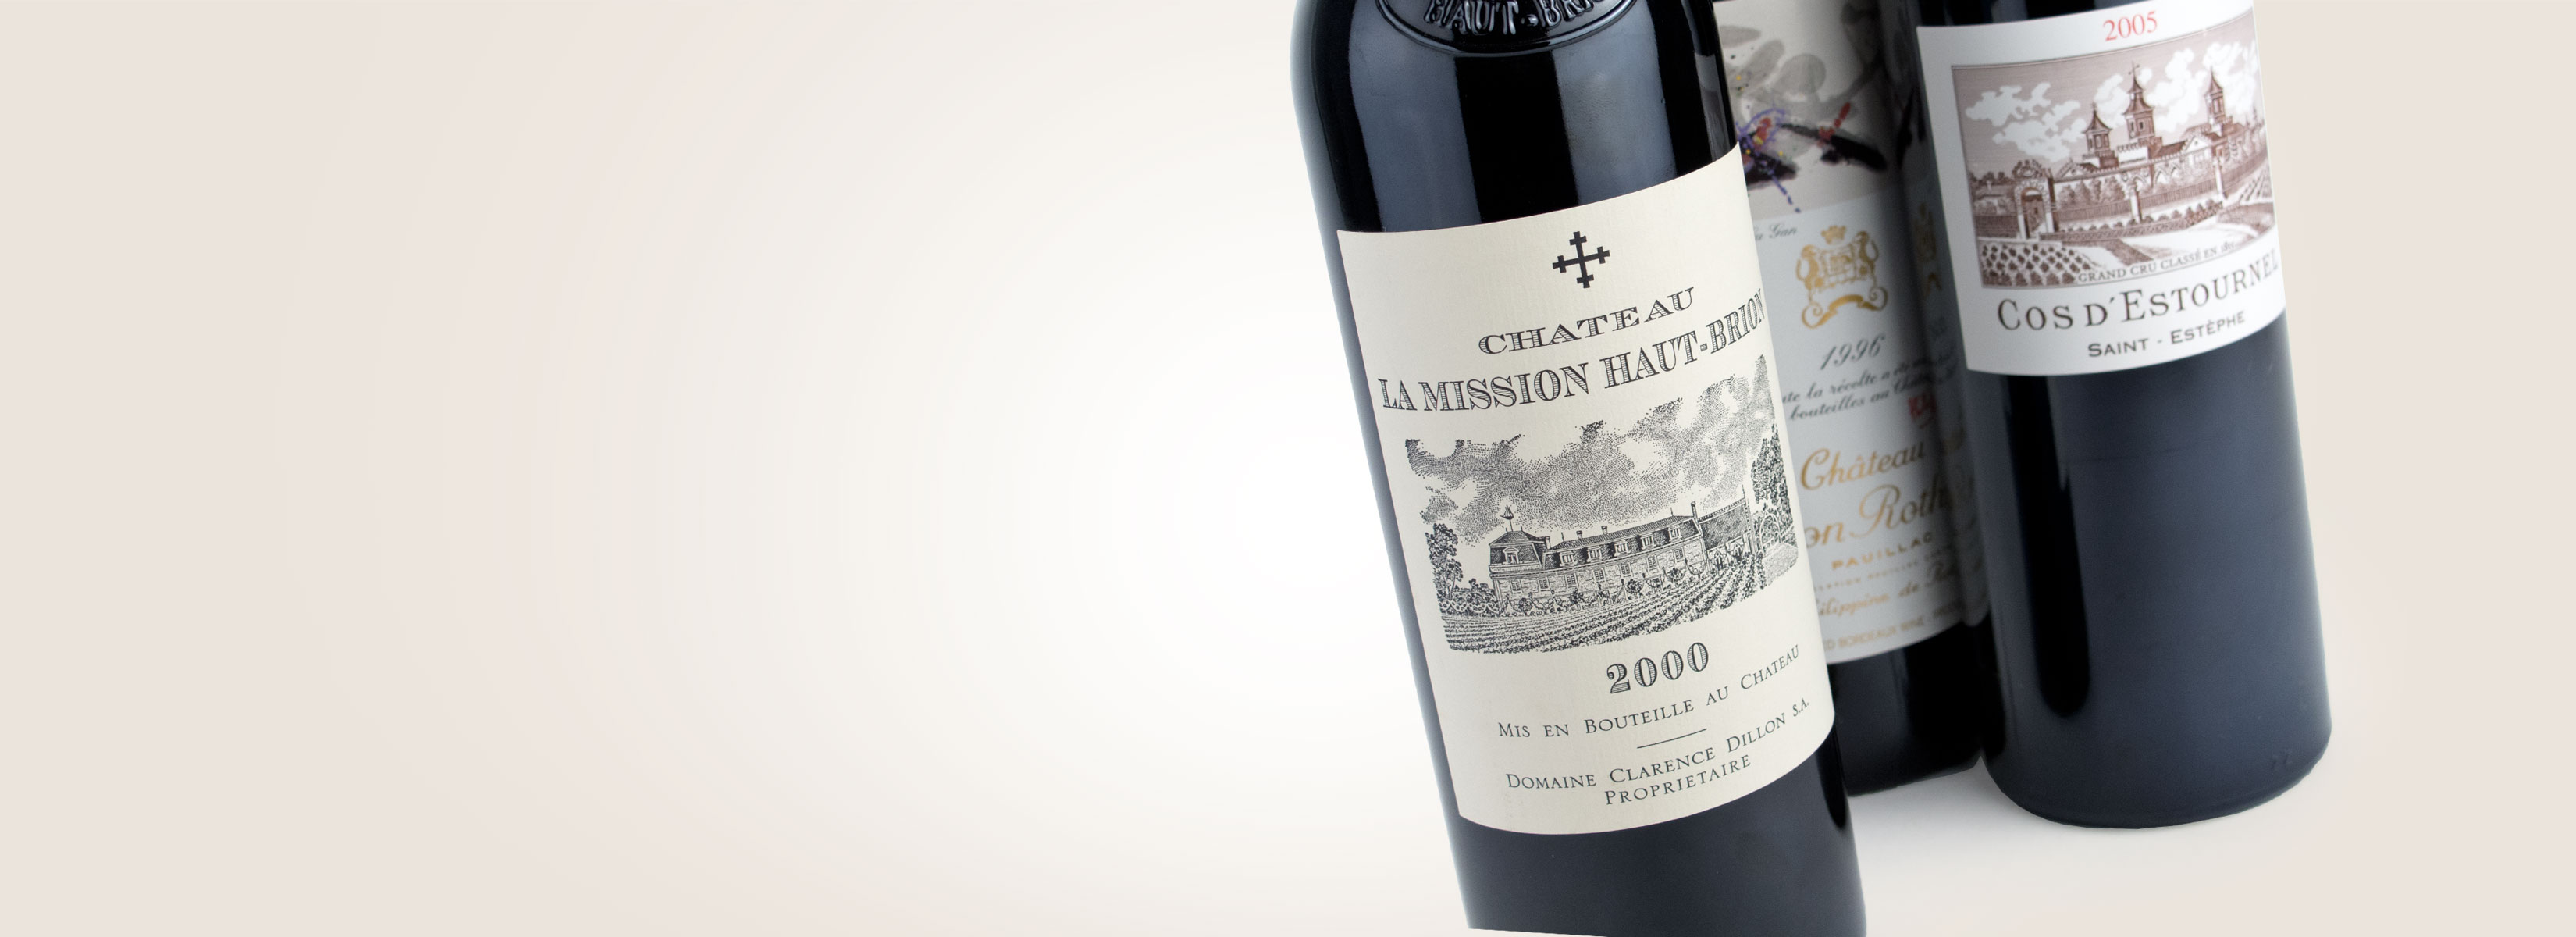 La Mission Haut Brion, Cos D'Estournel, Mouton